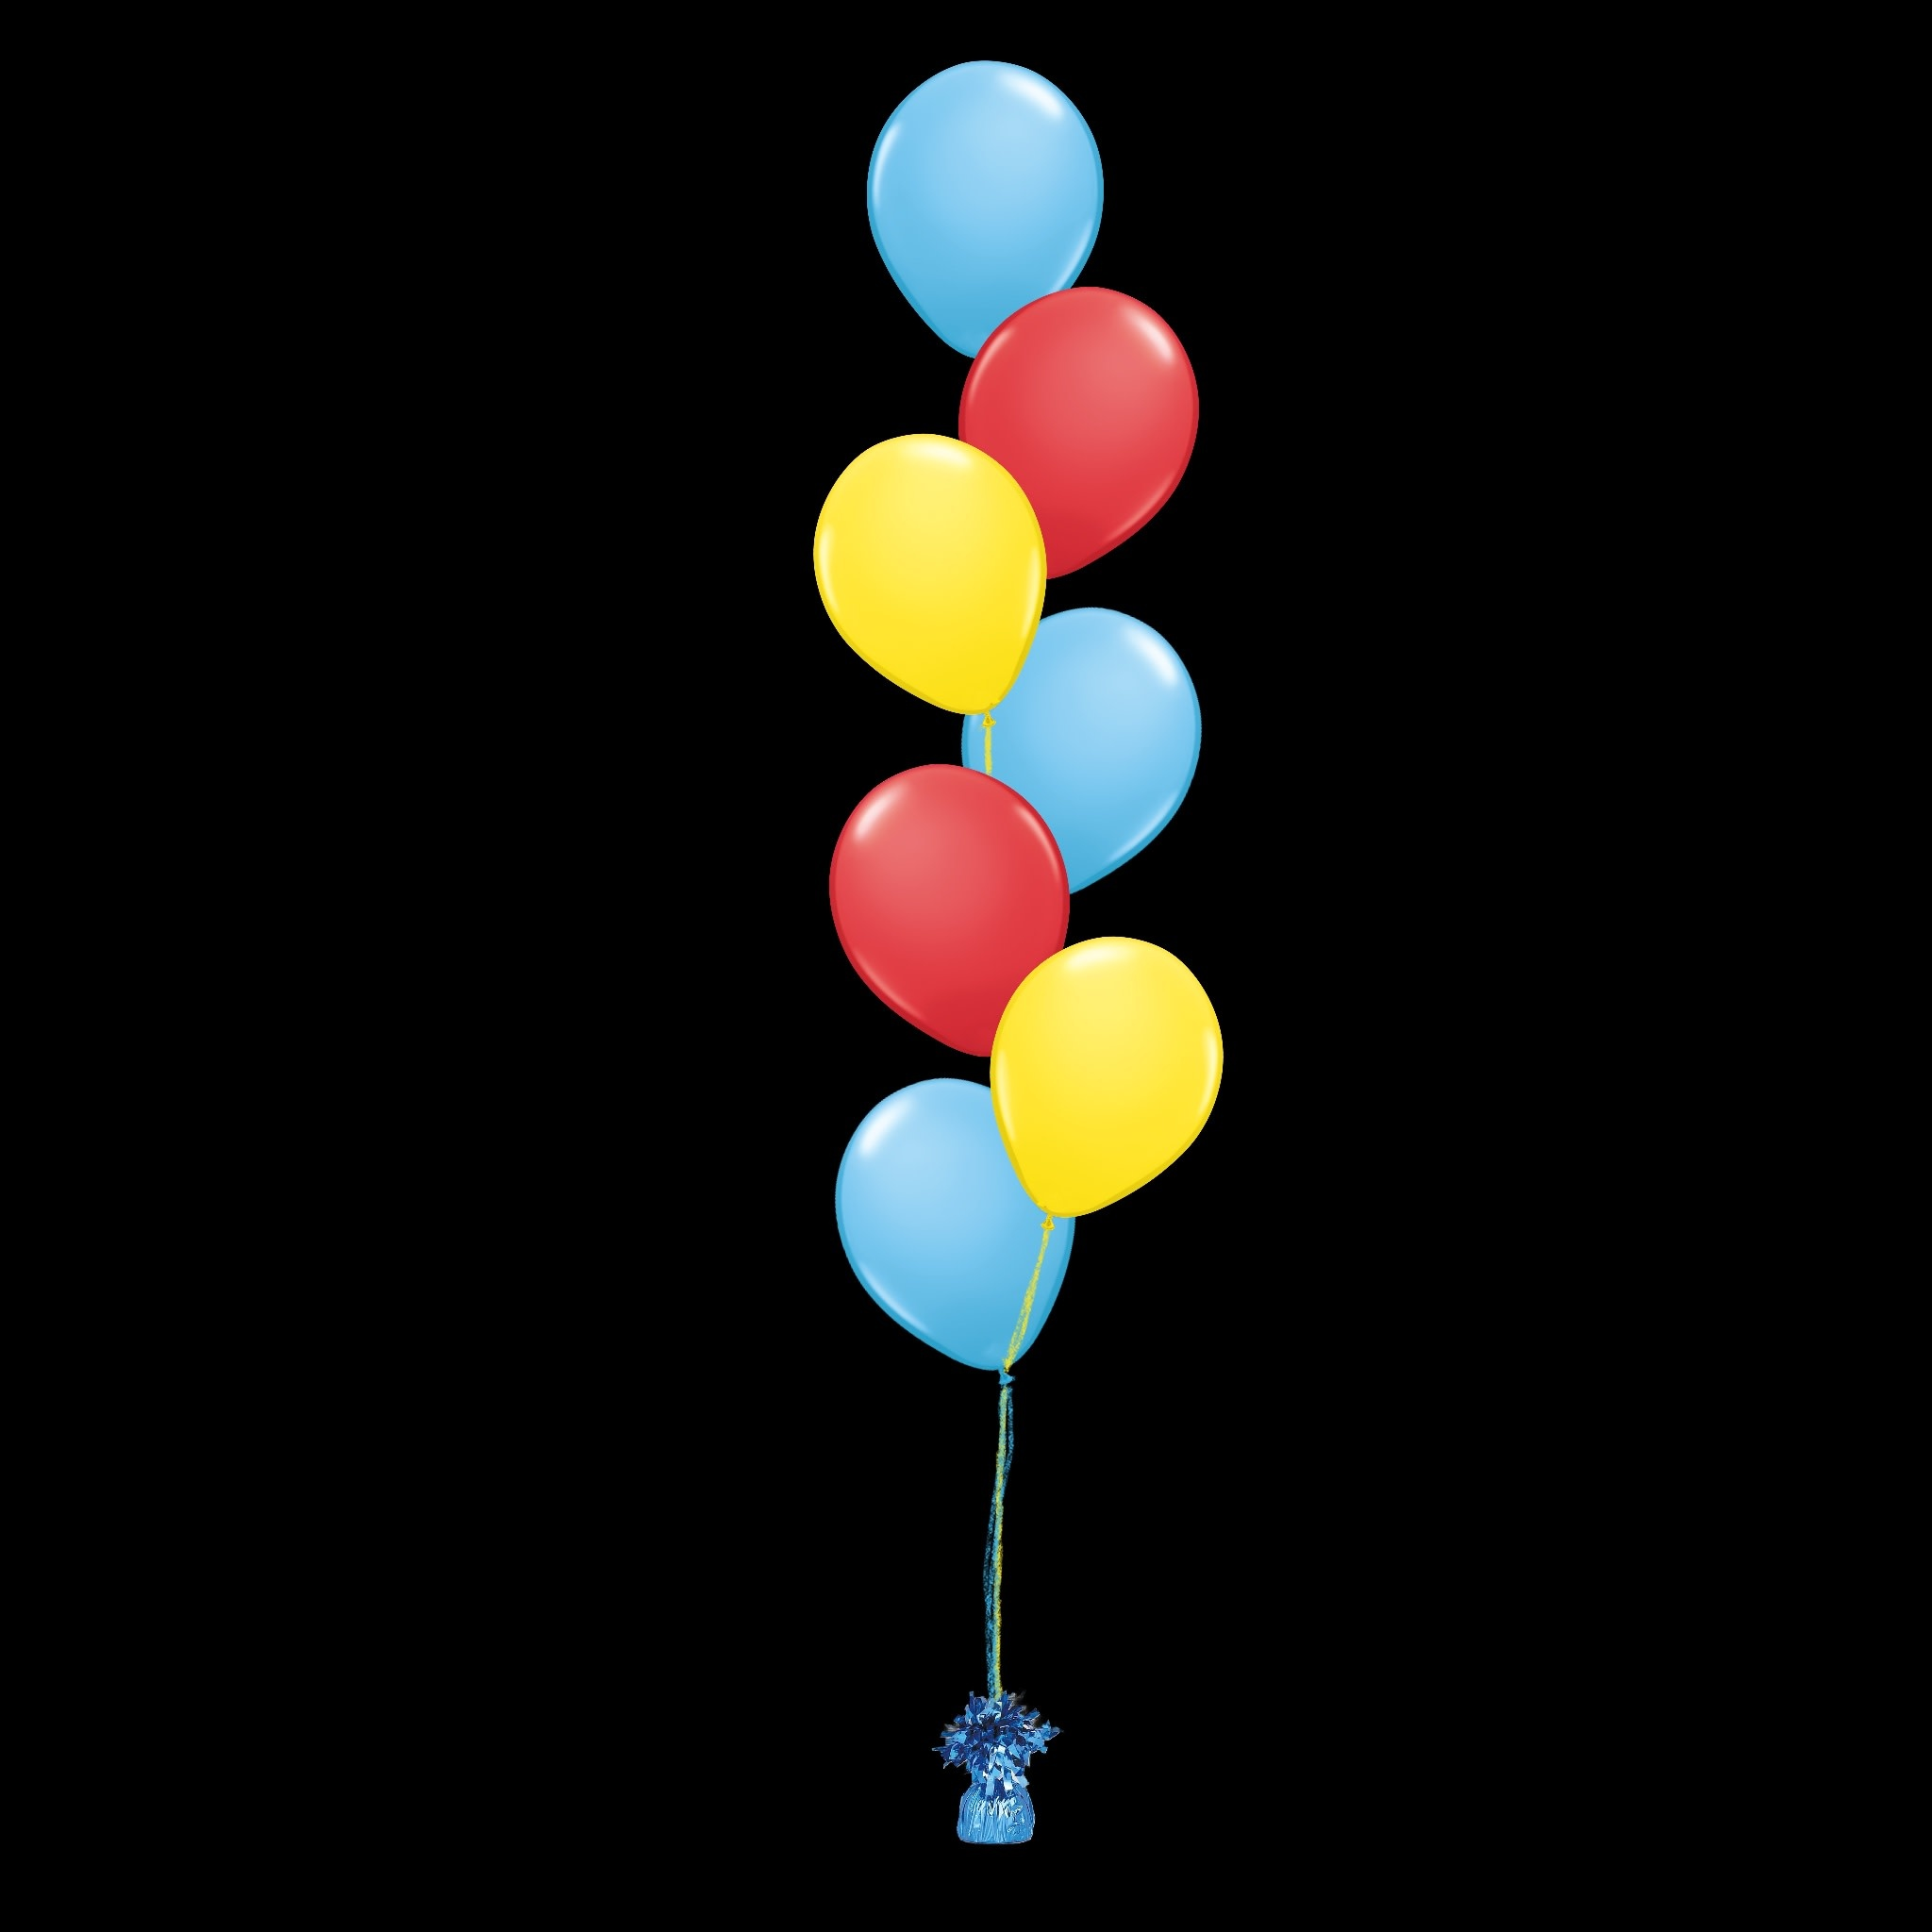 12 Balloons to a Weight Treated